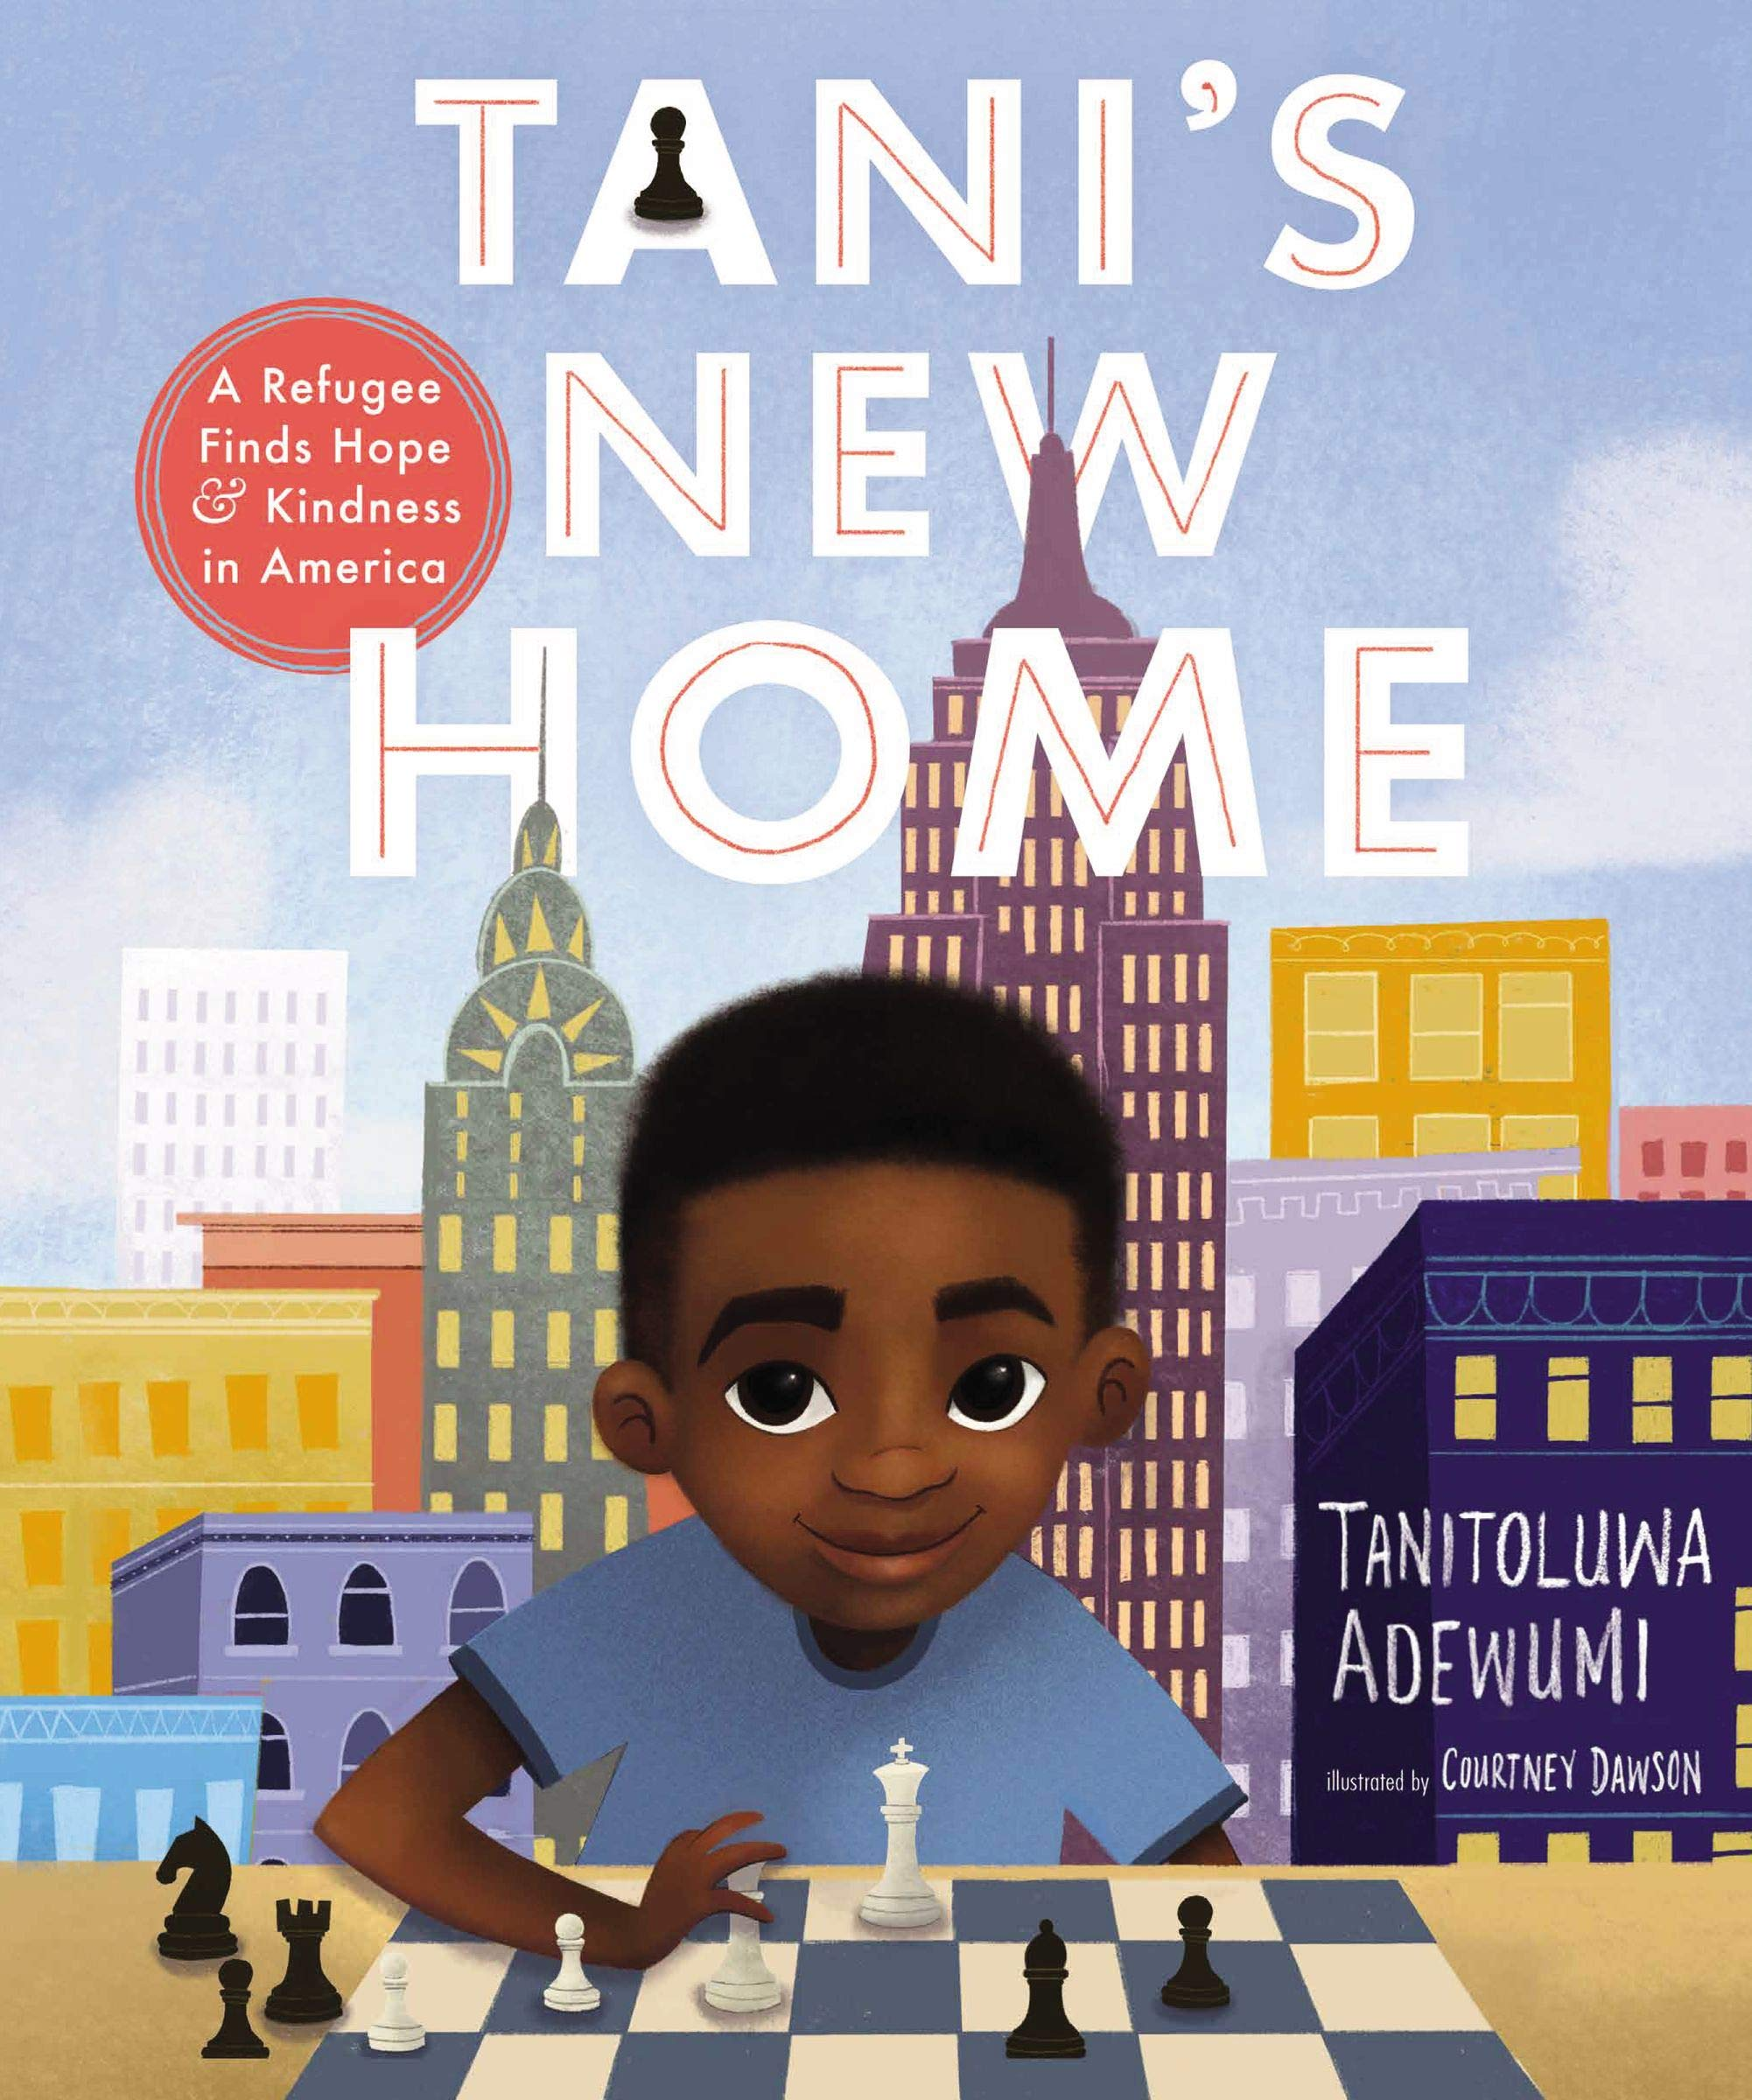 Tani's New Home: A Refugee Finds Hope and Kindness in America: Adewumi,  Tanitoluwa, Dawson, Courtney: 9781400218288: Amazon.com: Books